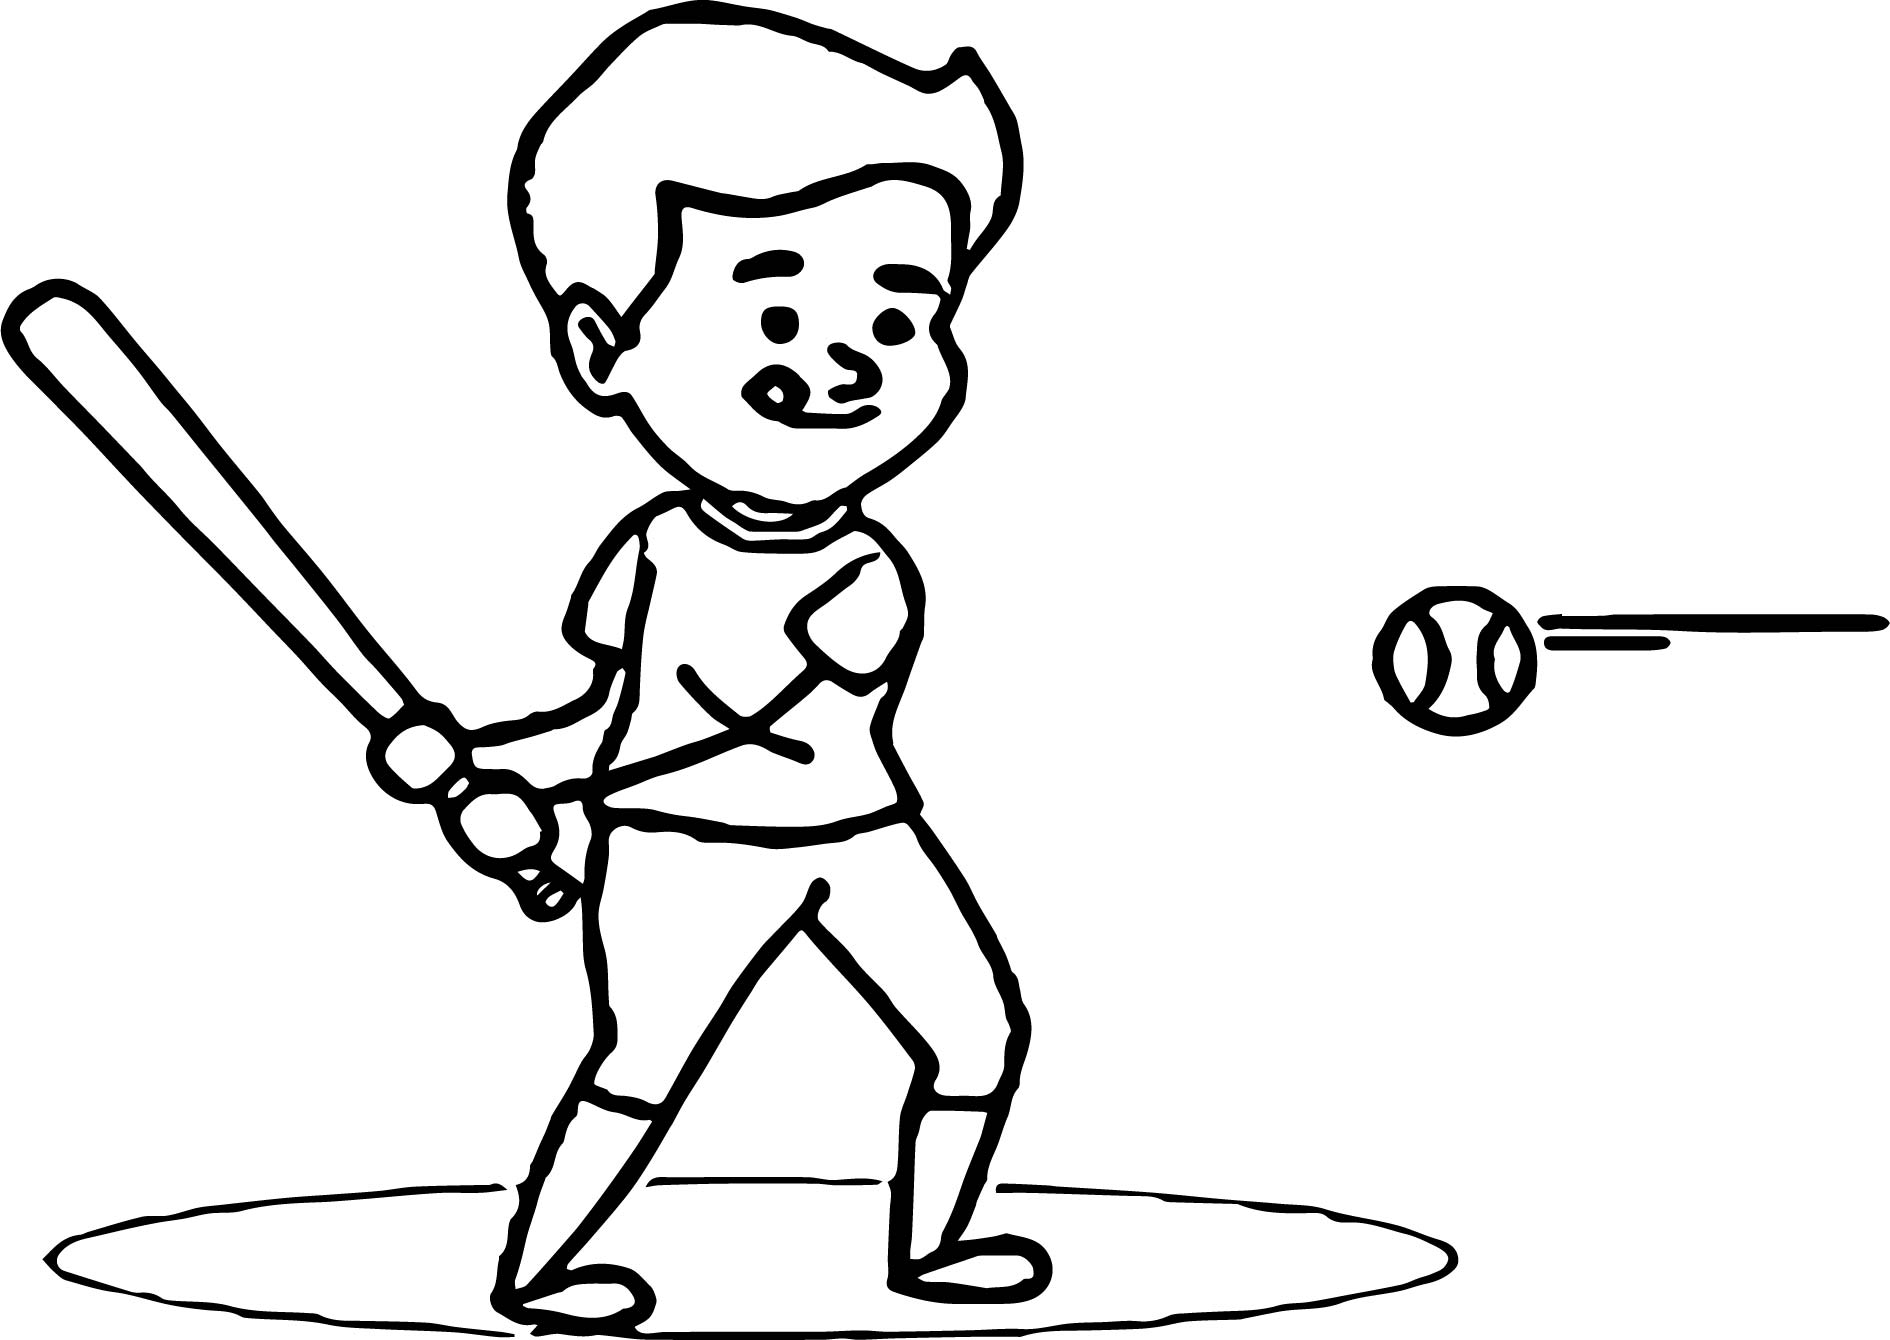 Little League Player Hitting Baseball Coloring Page